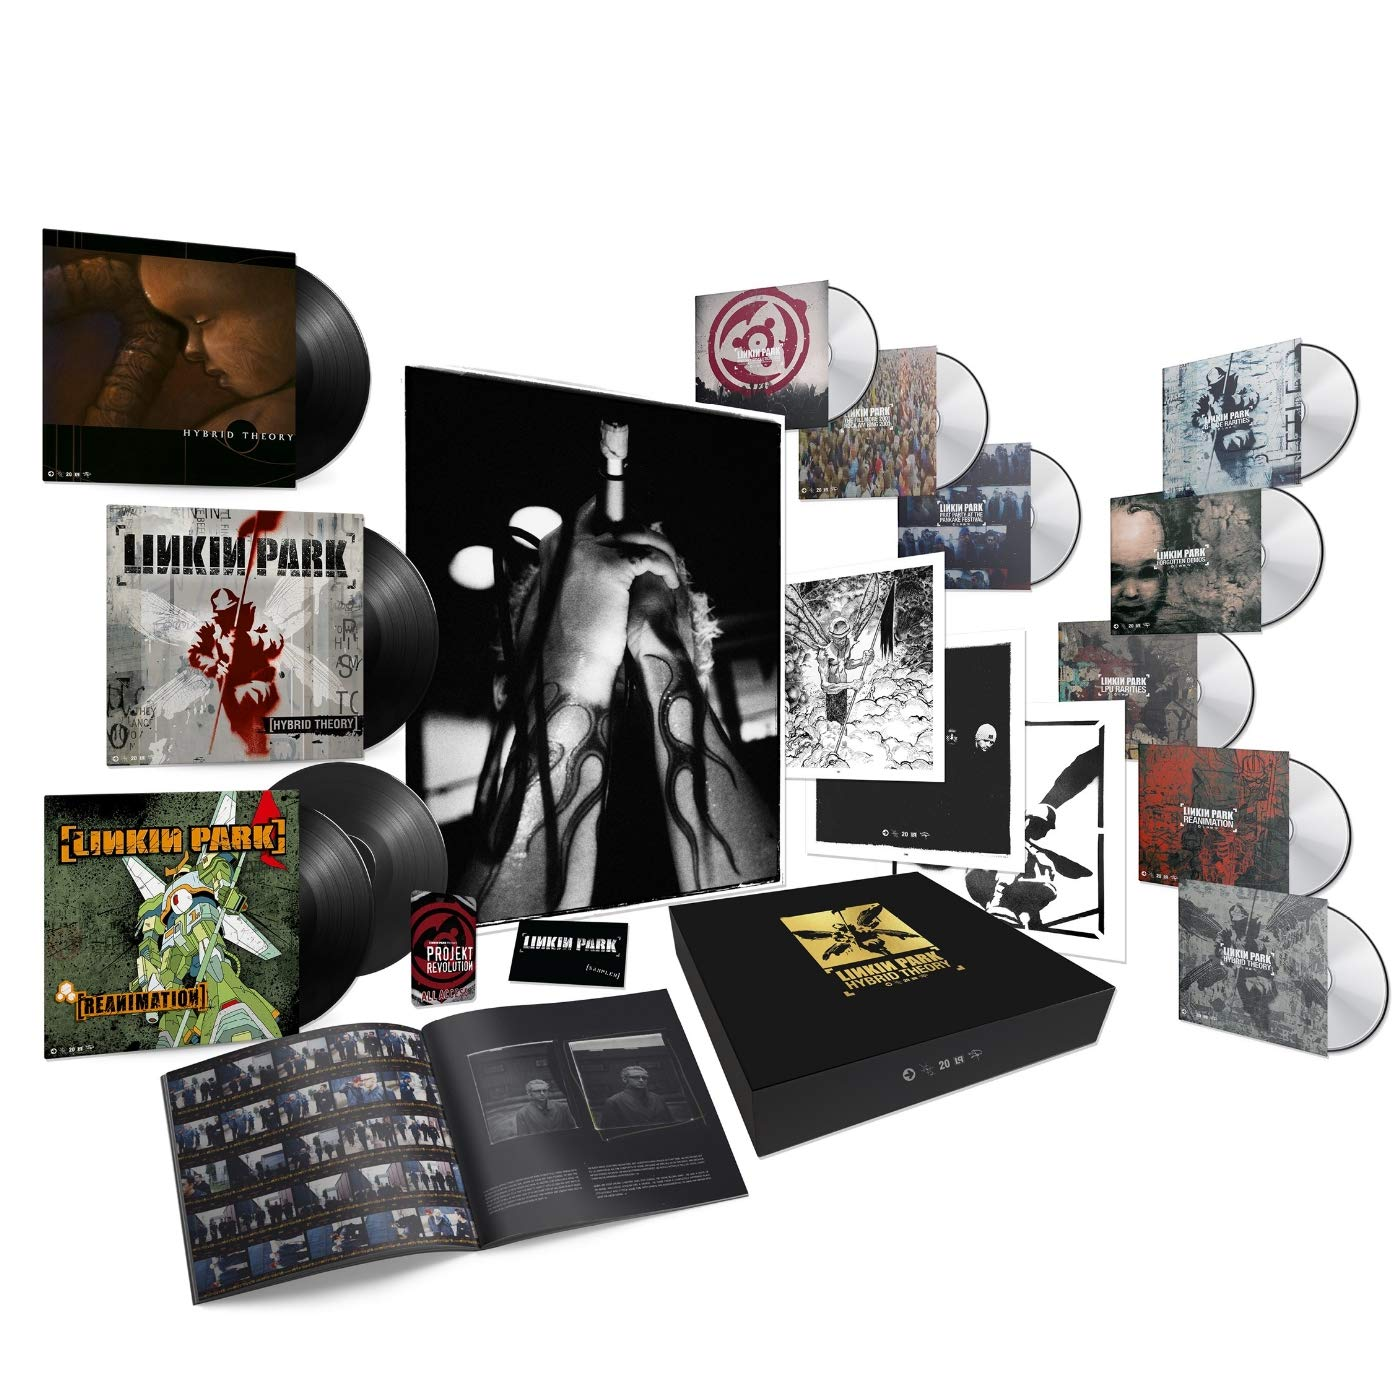 Super Deluxe Box Set